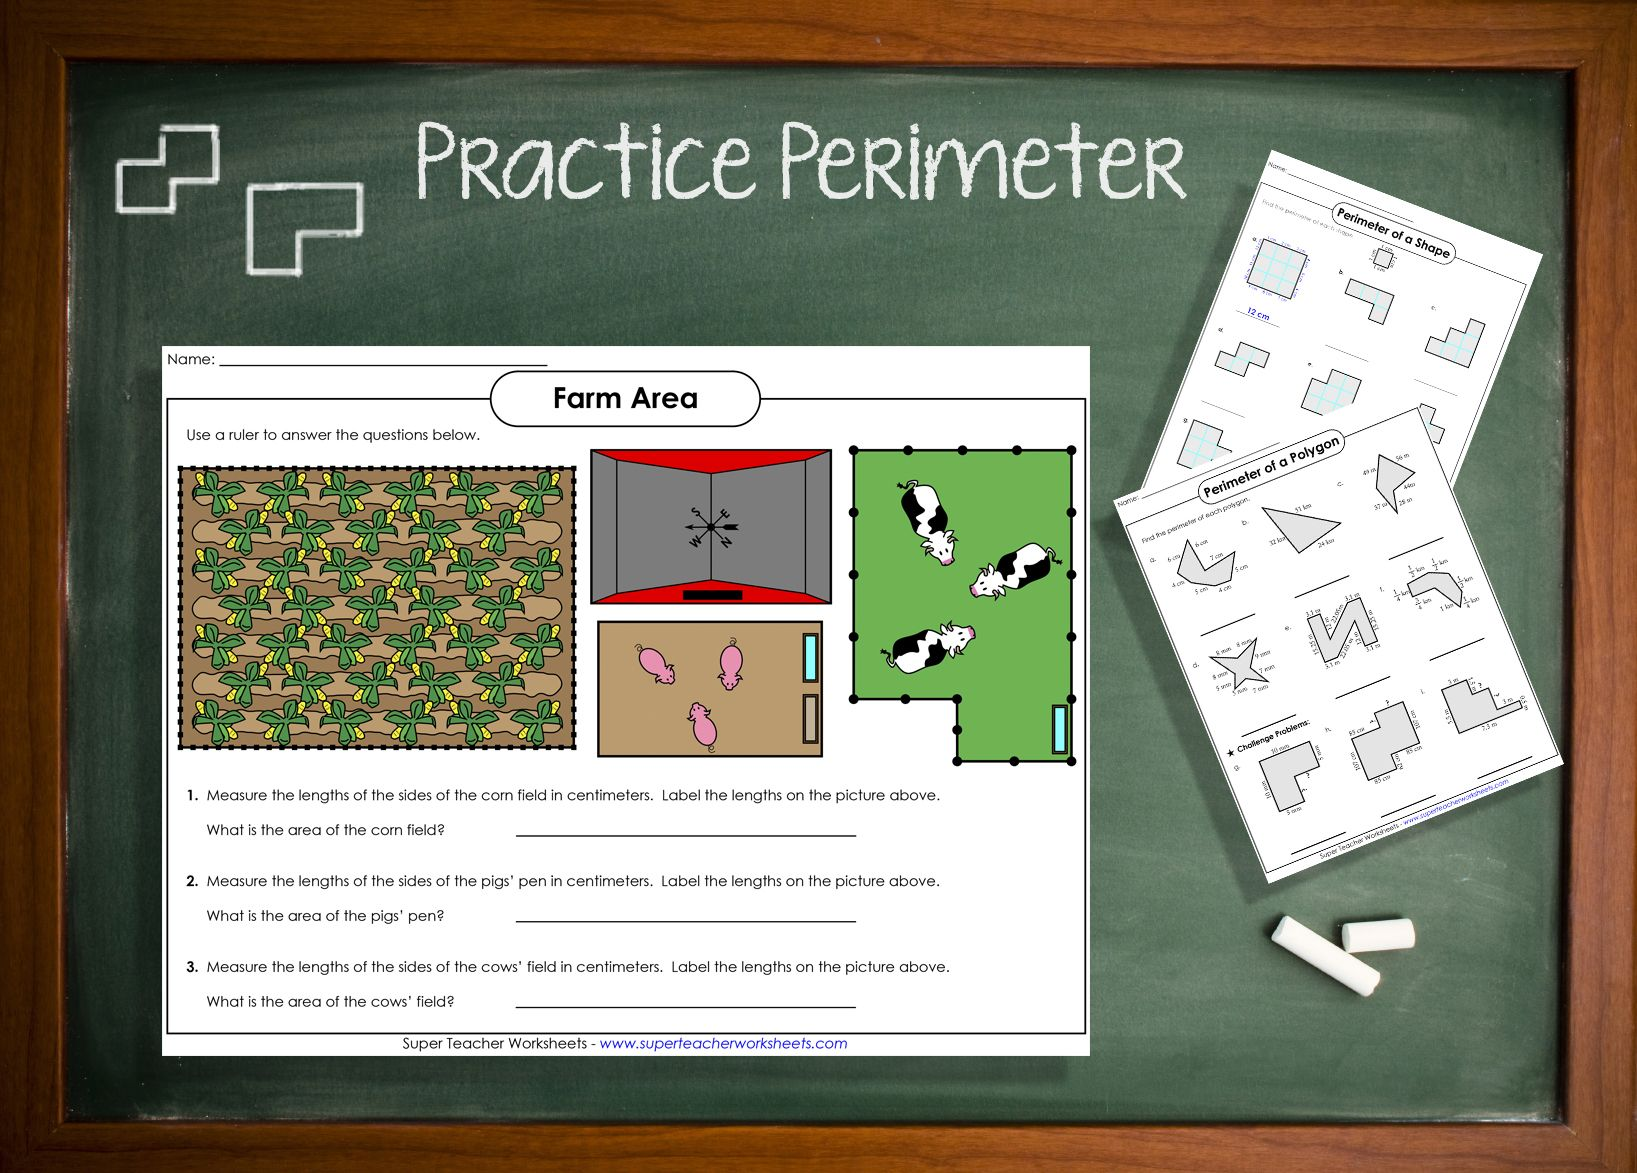 Great Resources Are Available On Superteacherworksheets